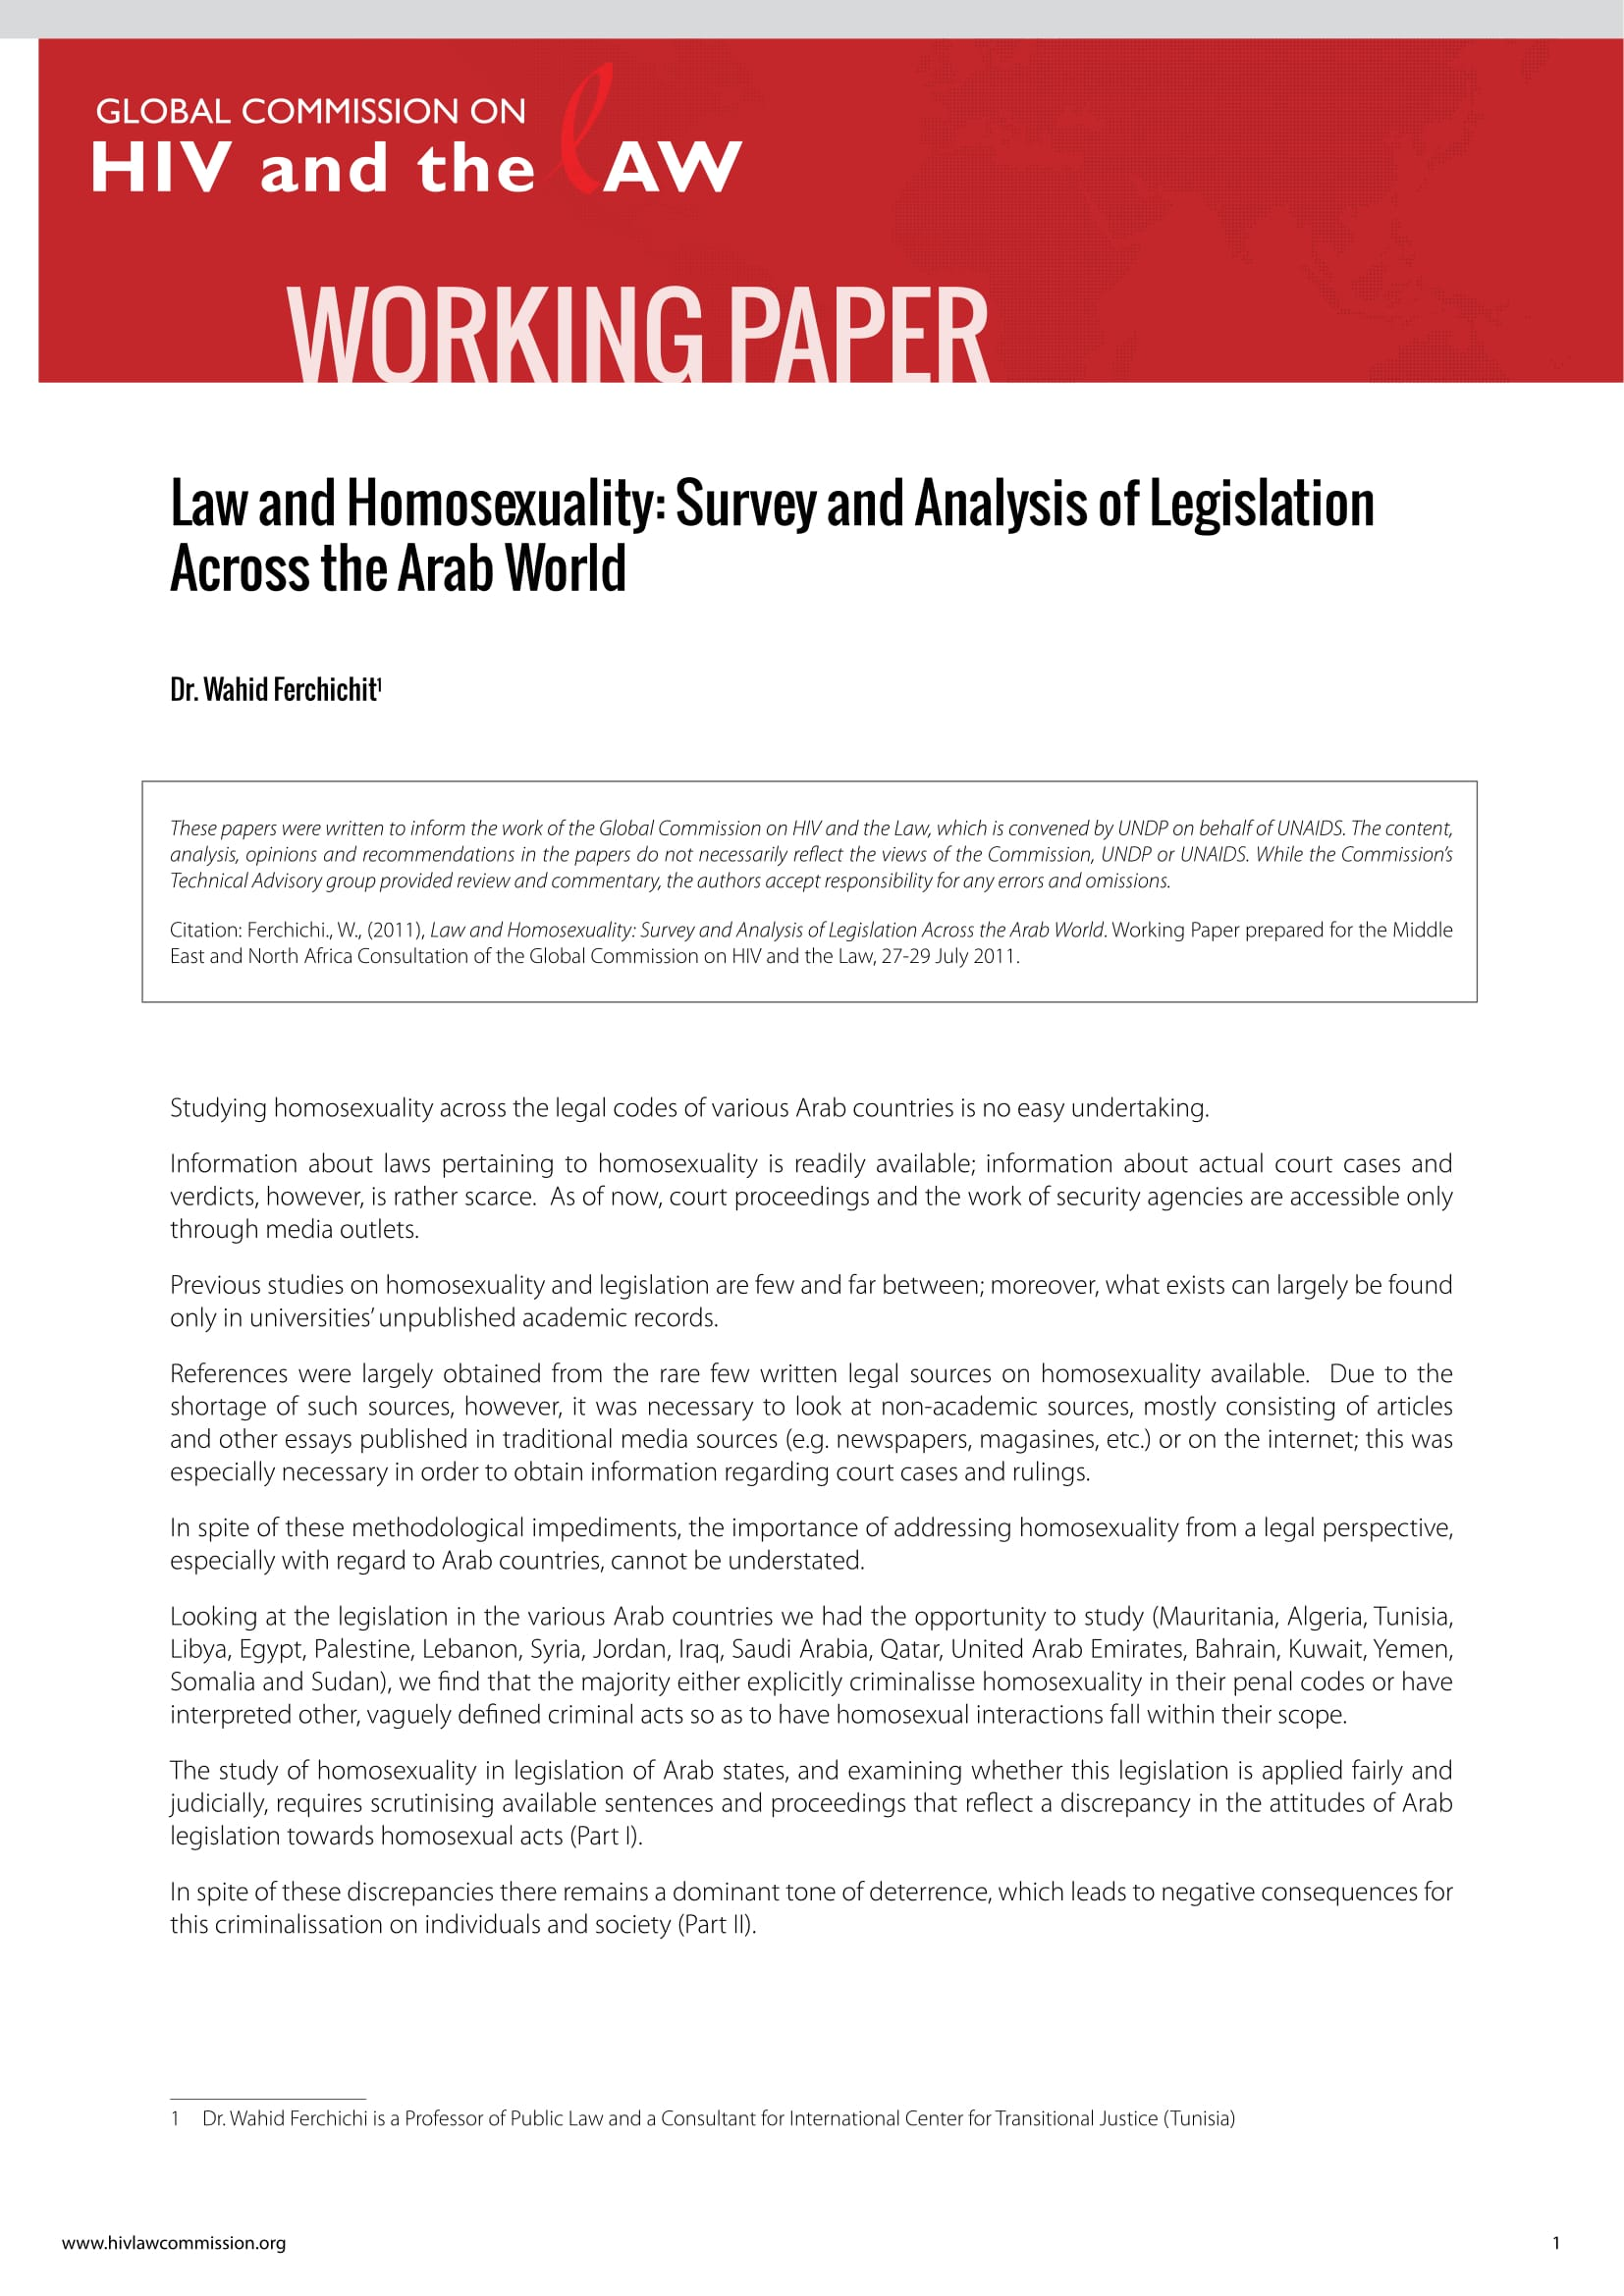 Law and Homosexuality: Survey and Analysis of Legislation Across the Arab World